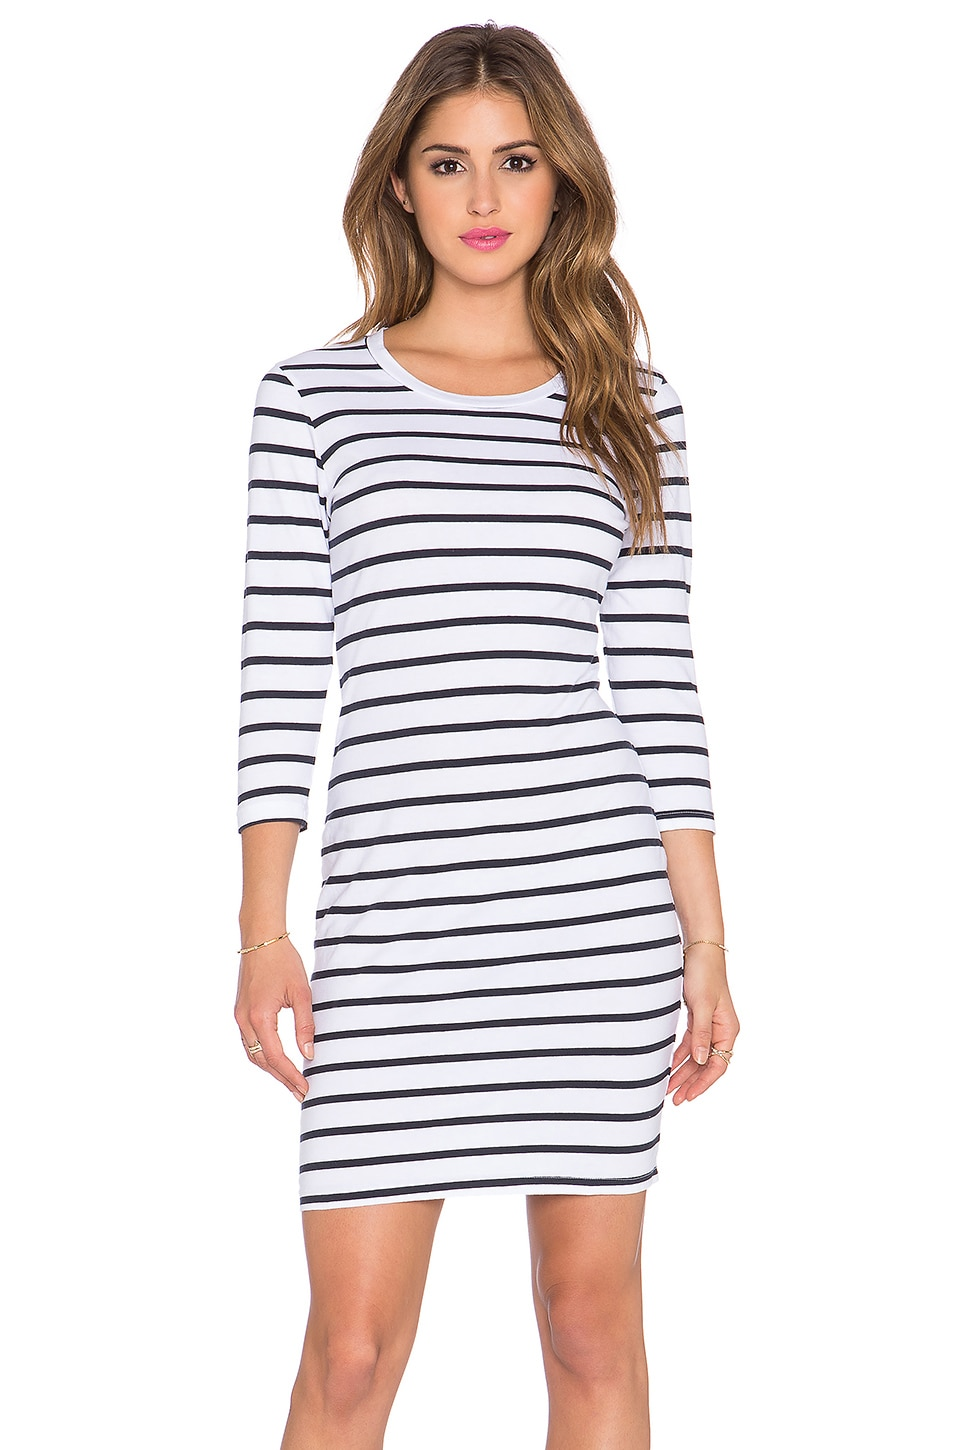 SUNDRY Long Sleeve Stripe Dress in White